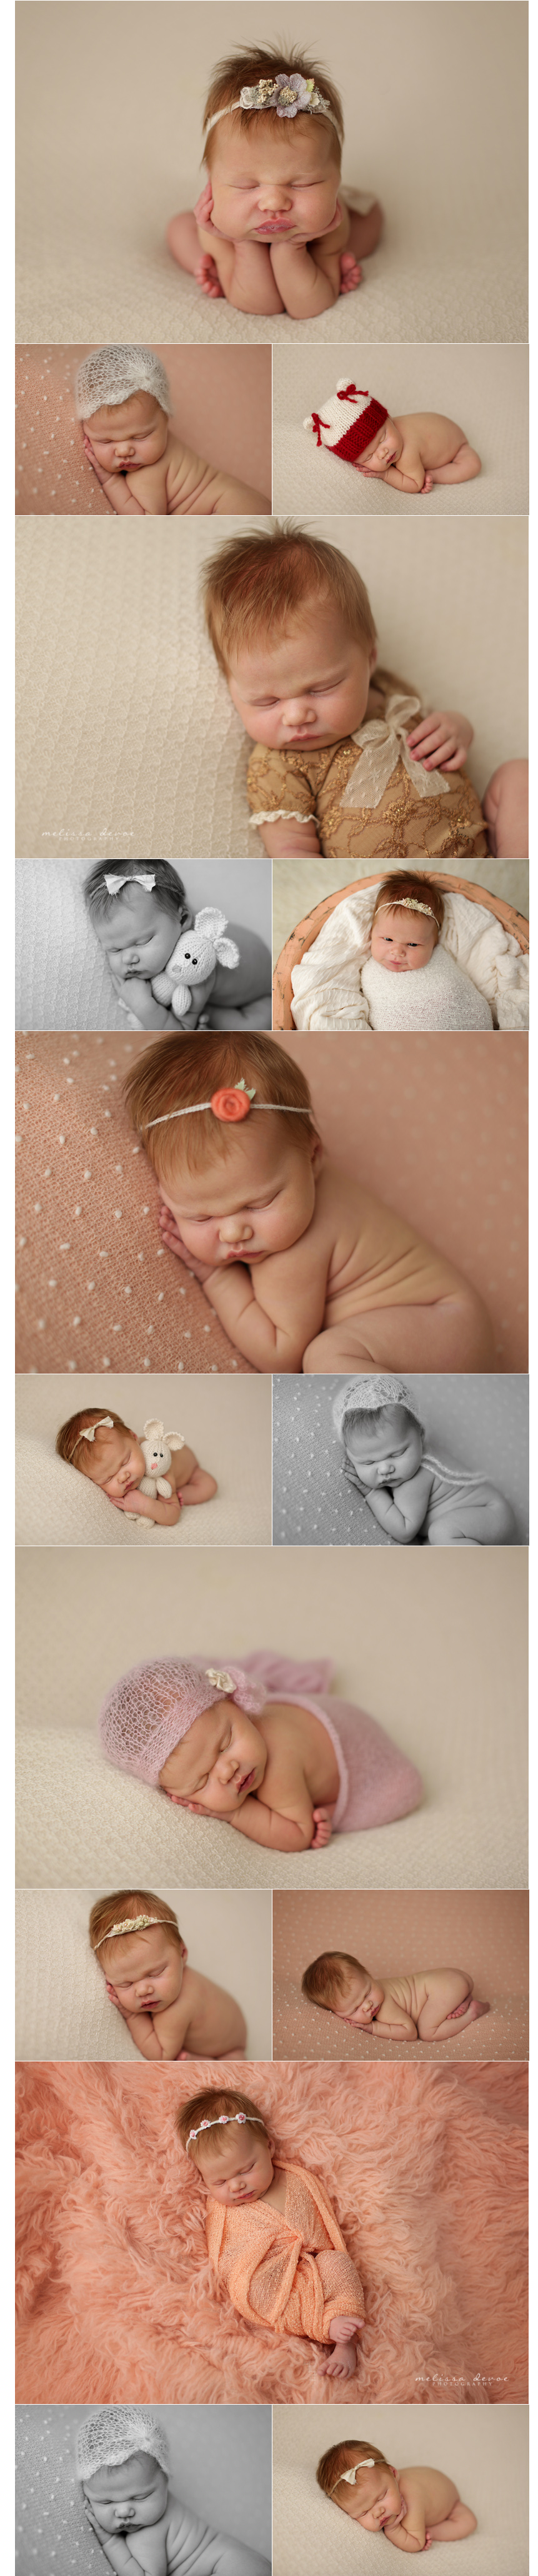 Melissa DeVoe Photography Raleigh Newborn Photographer 1